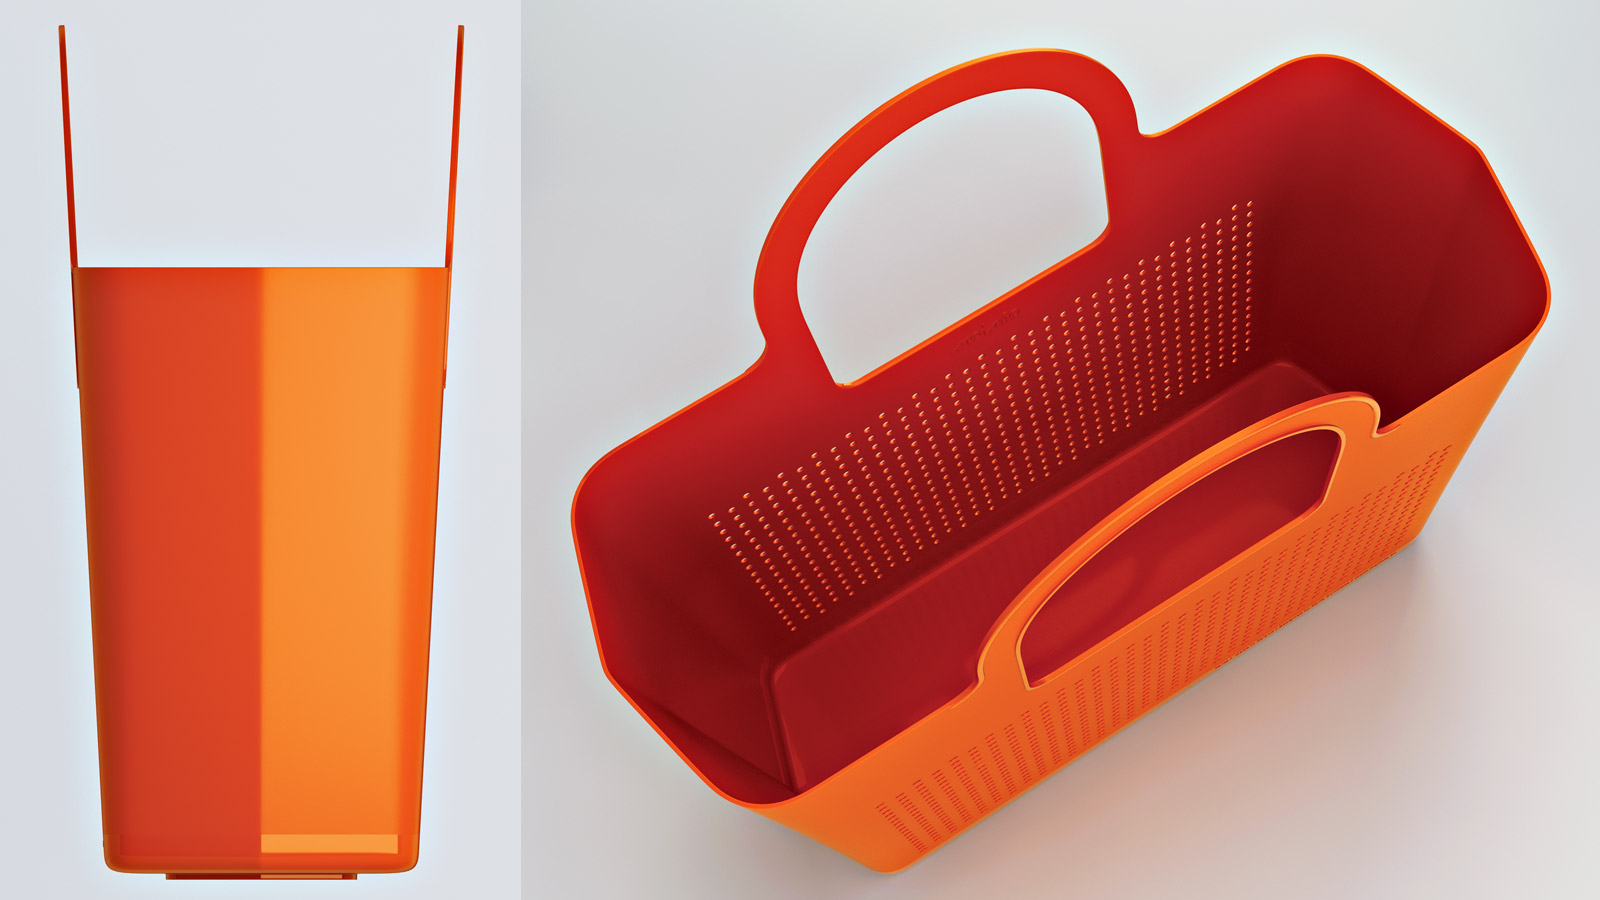 POLKA shopper has been designed for Polish brand MOIMIO